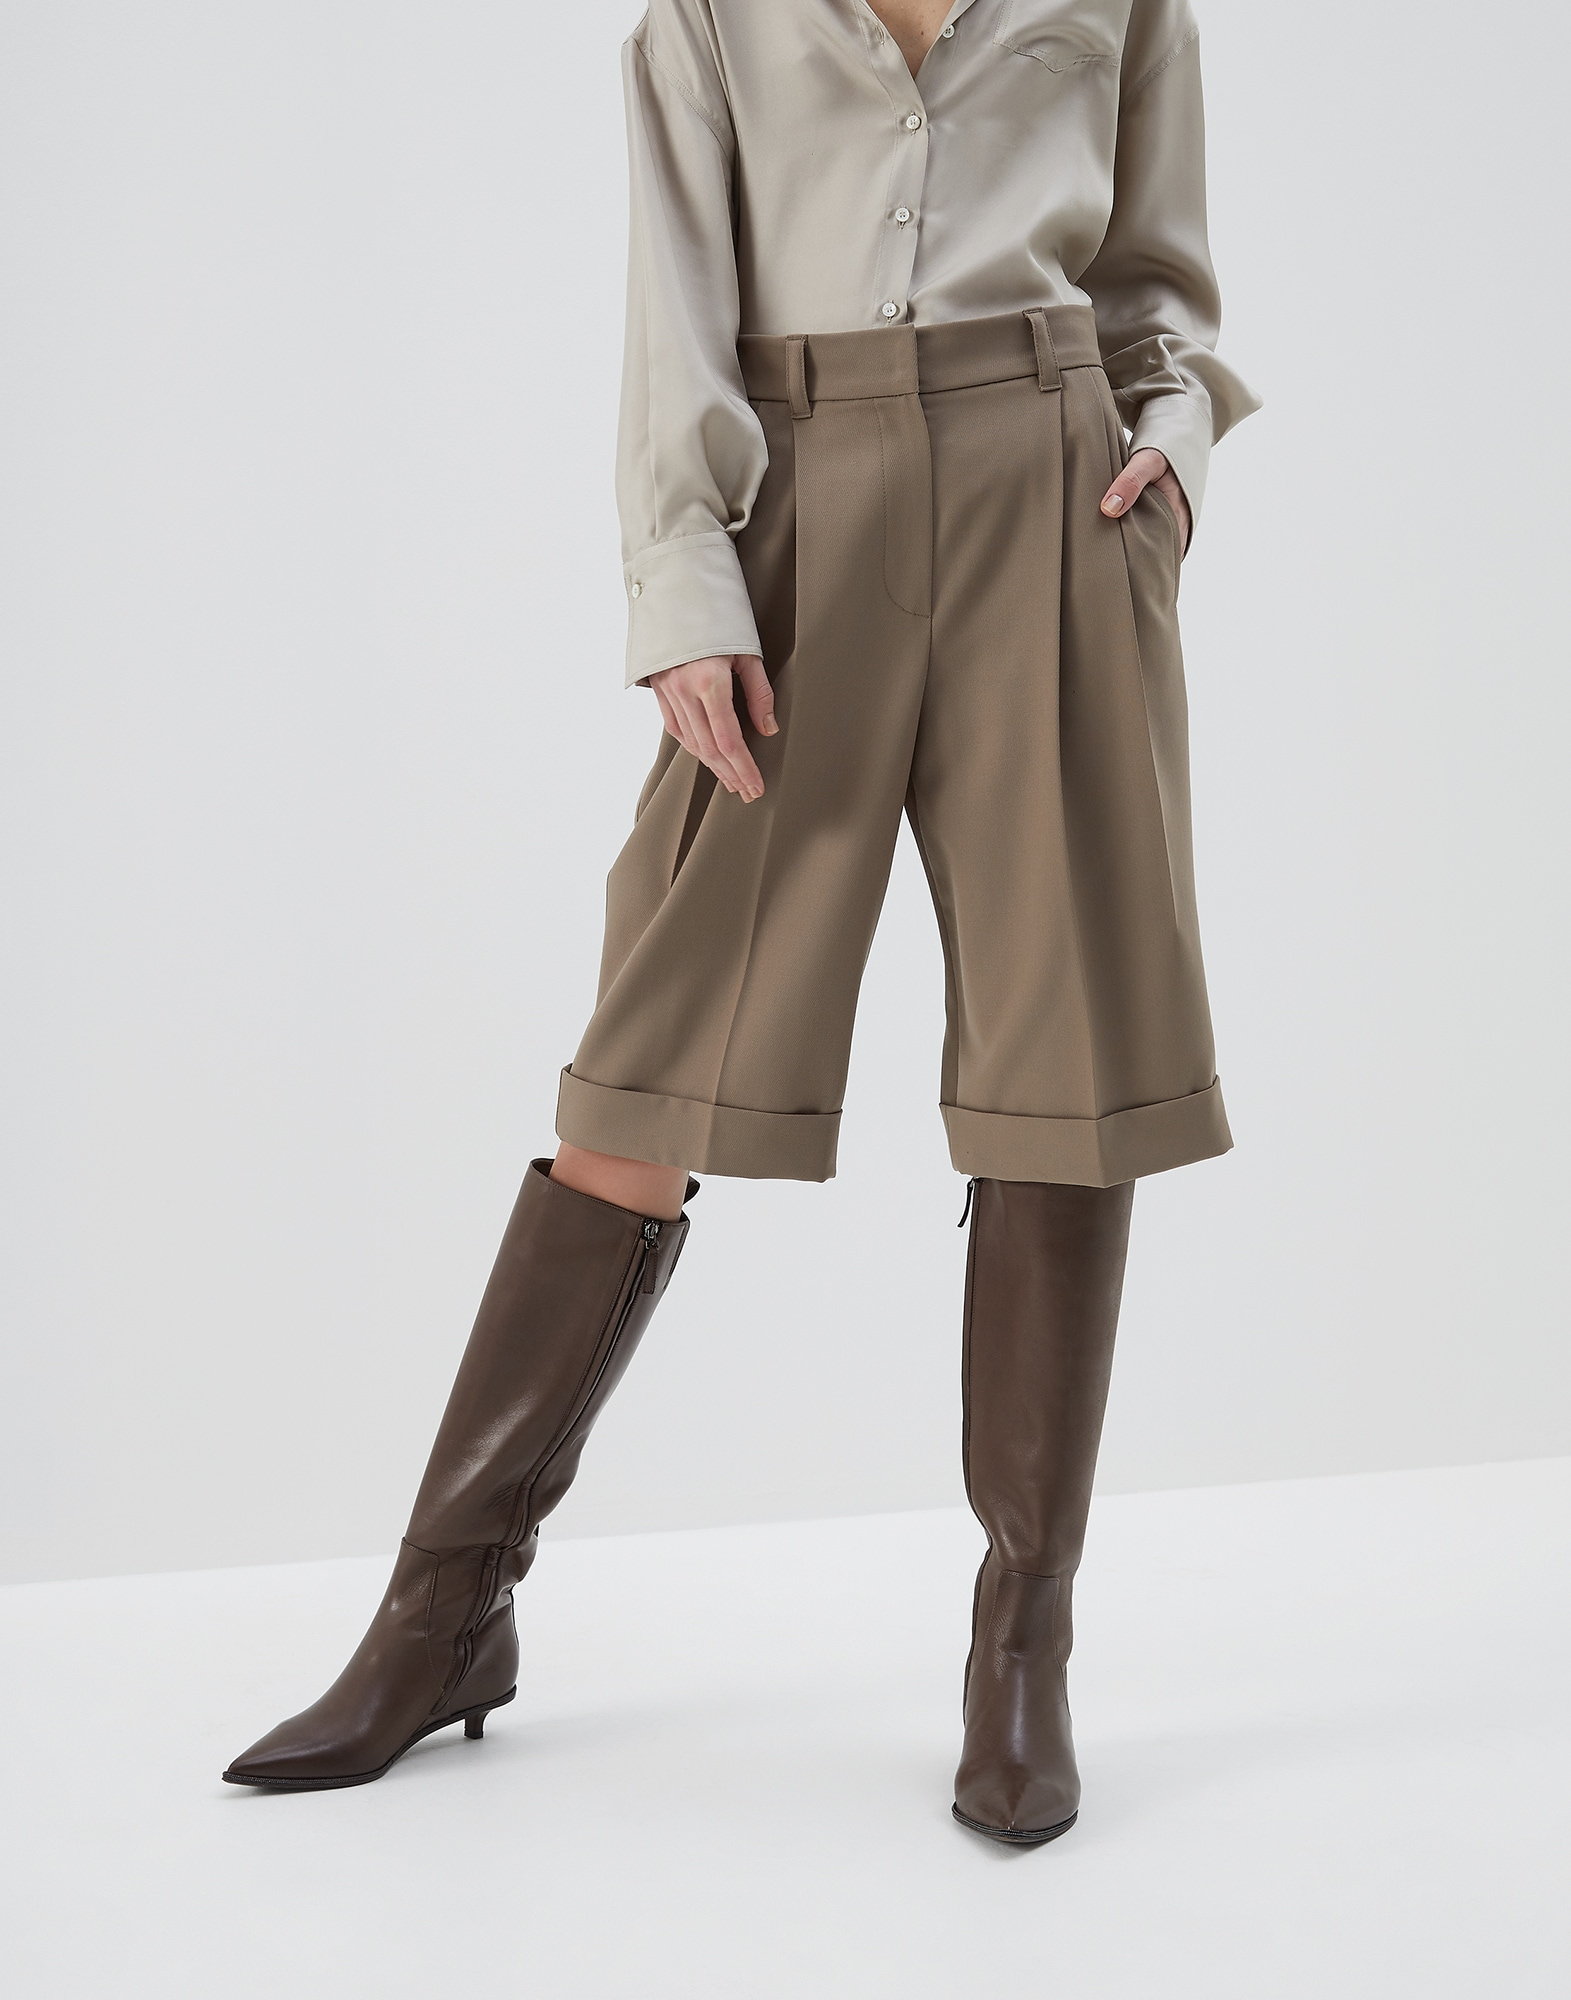 Bermuda Shorts Brown Woman 0 - Brunello Cucinelli